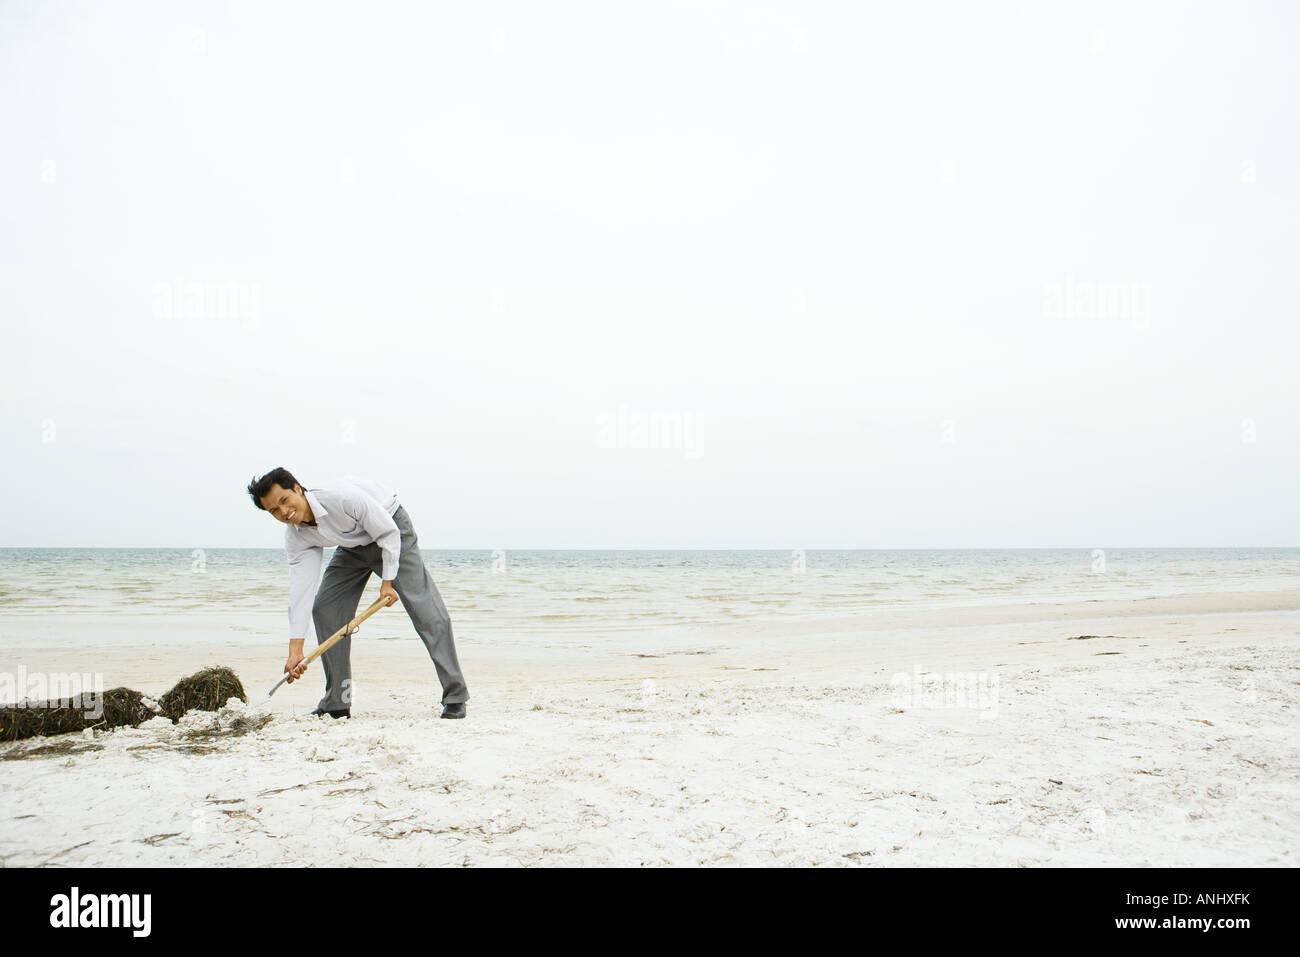 Man at the beach, bending over and digging in sand, smiling at camera Stock Photo